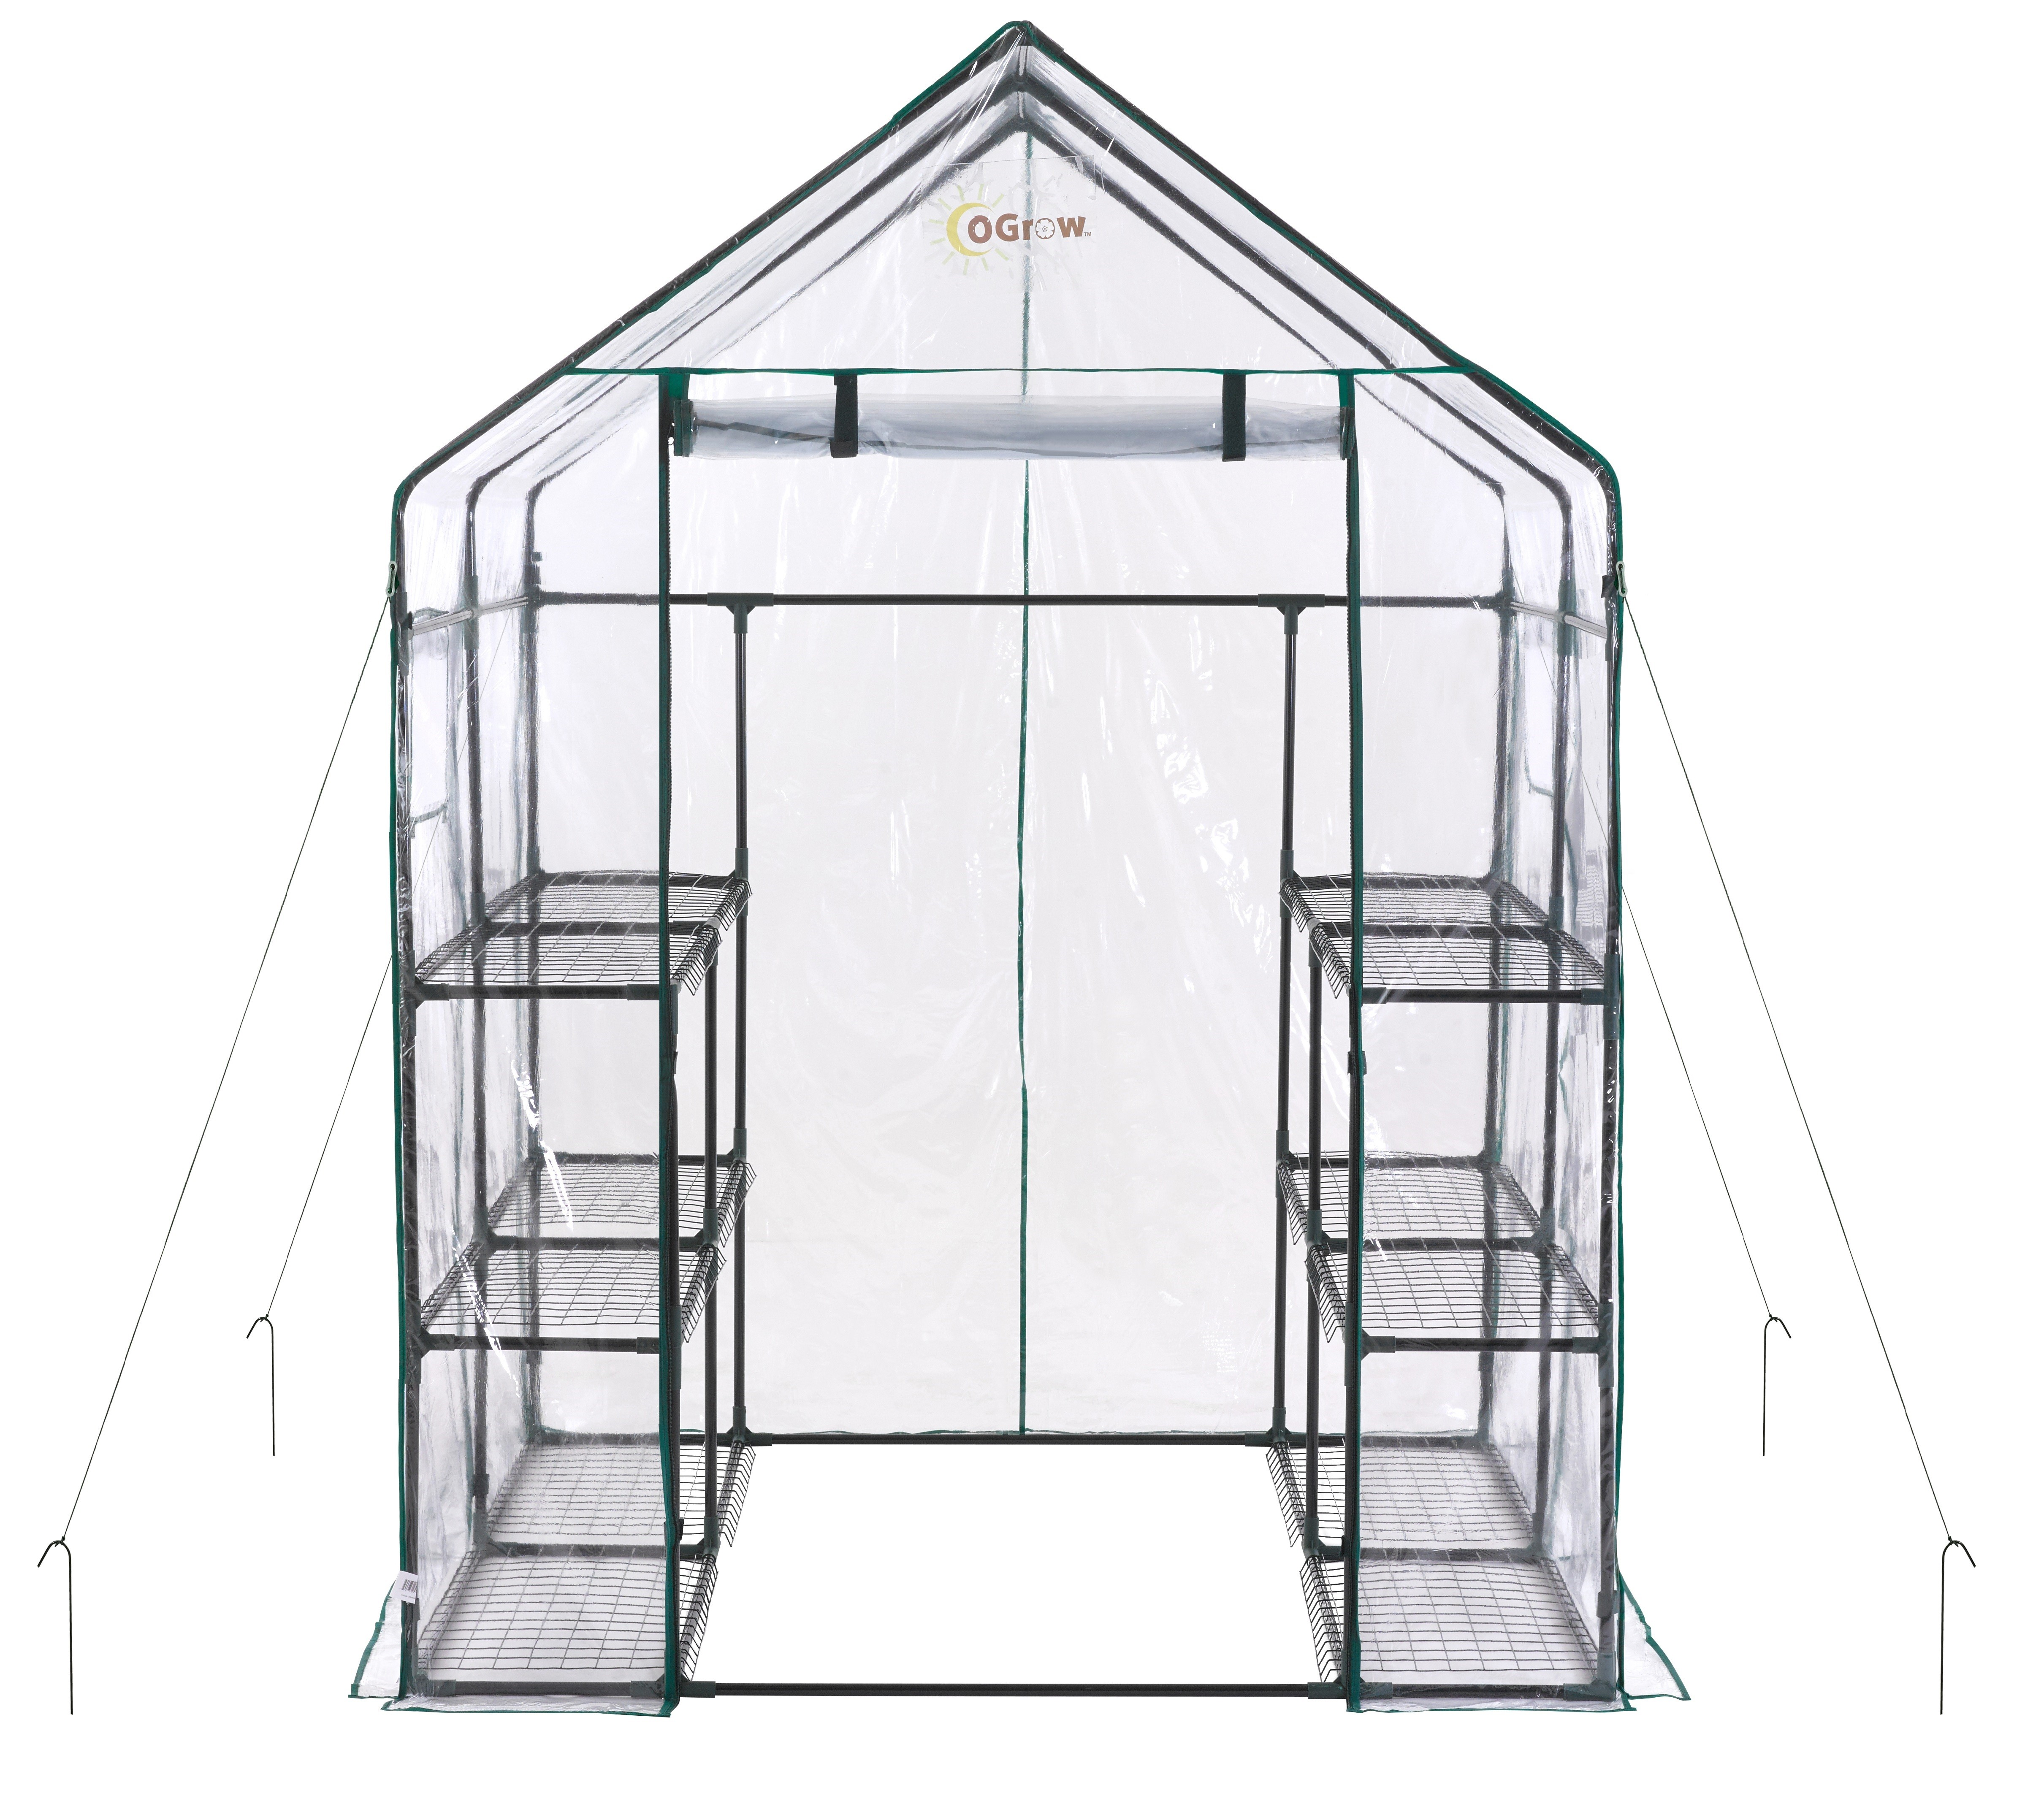 "Ogrow Portable Walk In Greenhouse - 3 Tier 12 Shelf Large PVC Garden Greenhouse - 77"" H x 56"" W x 56"" D"